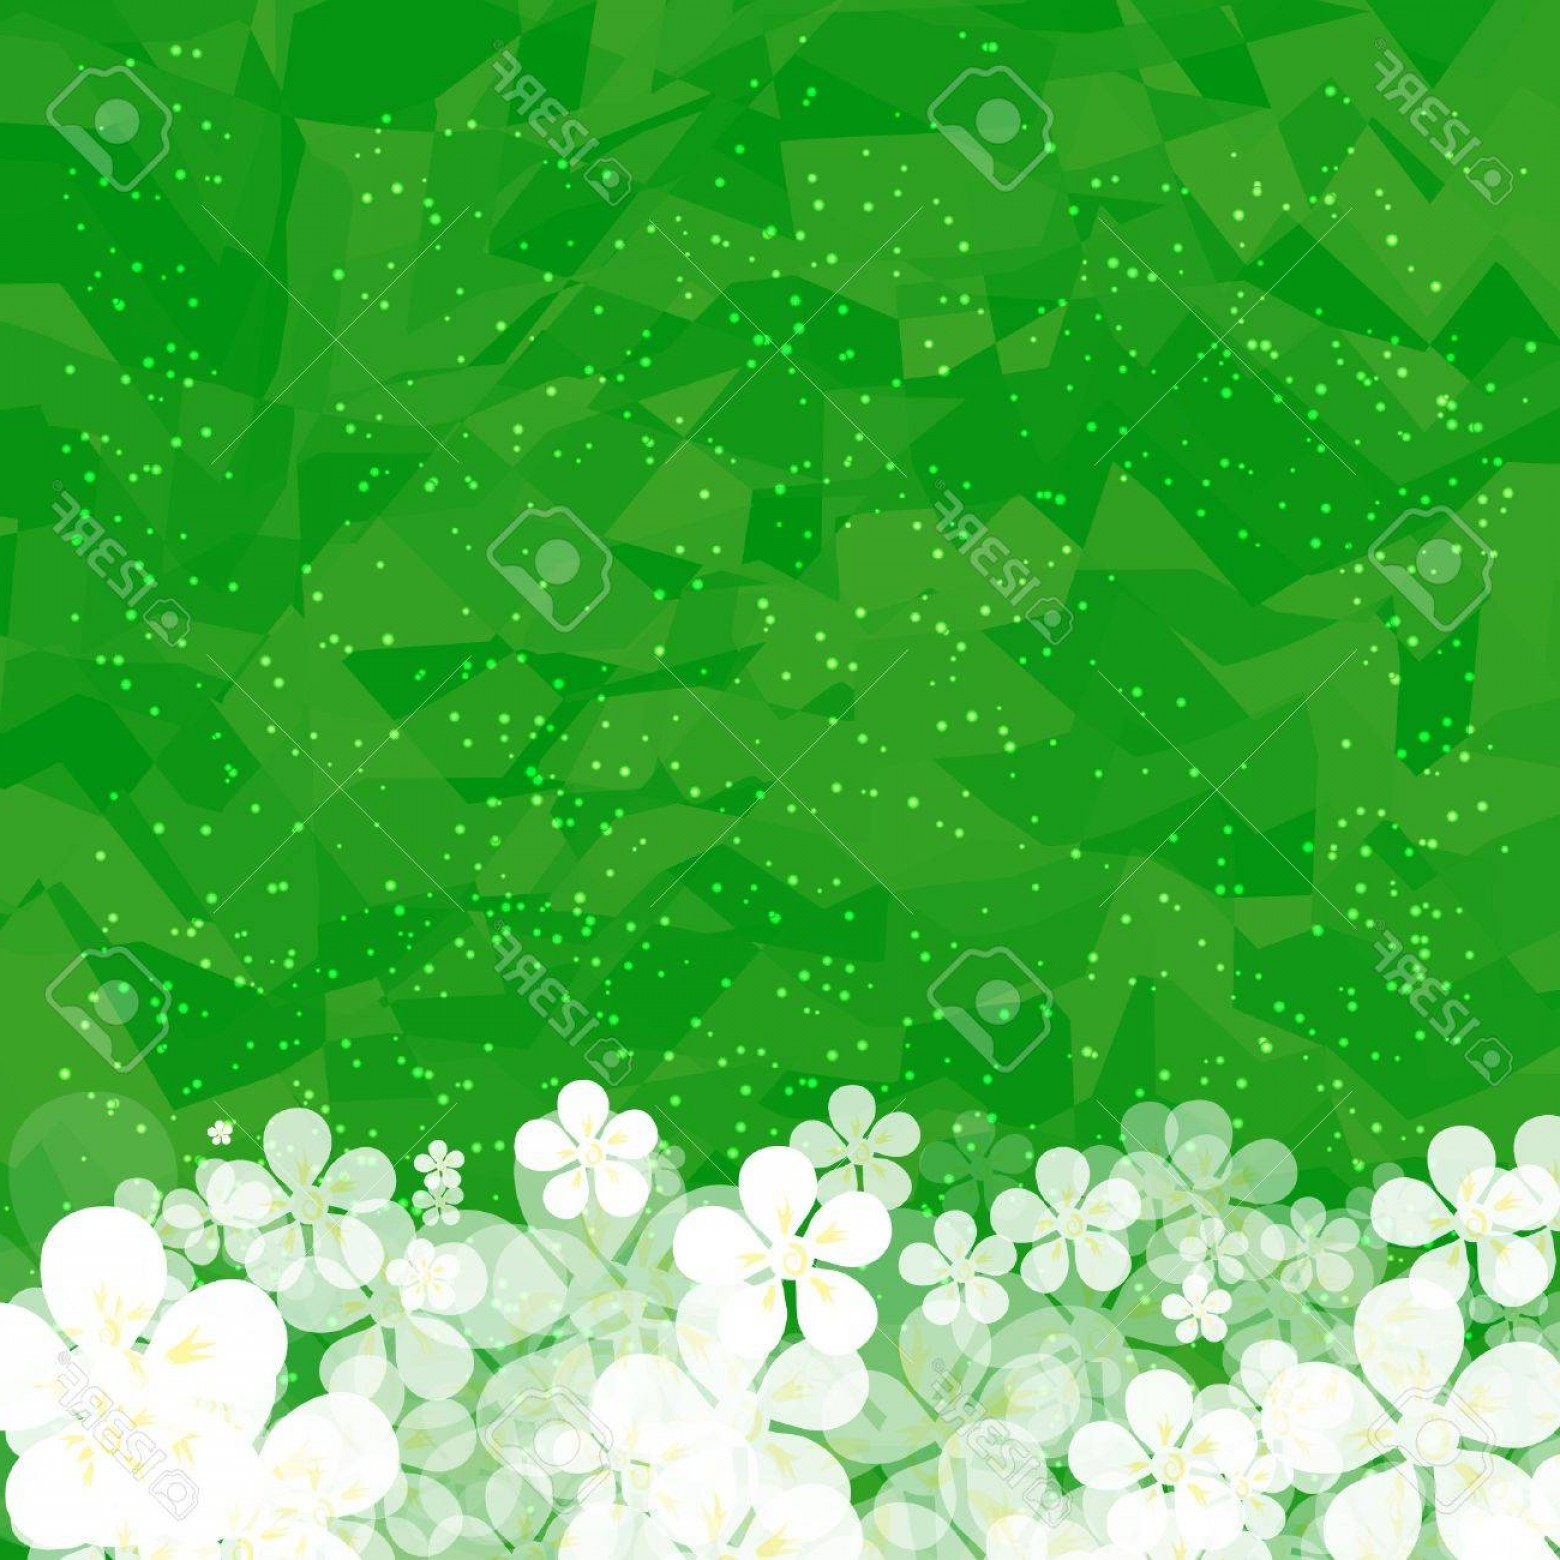 Green Flower Vector Designs: Photostock Vector Green Floral Background With Gentle Flowers Eco Design With Geometrical Basis